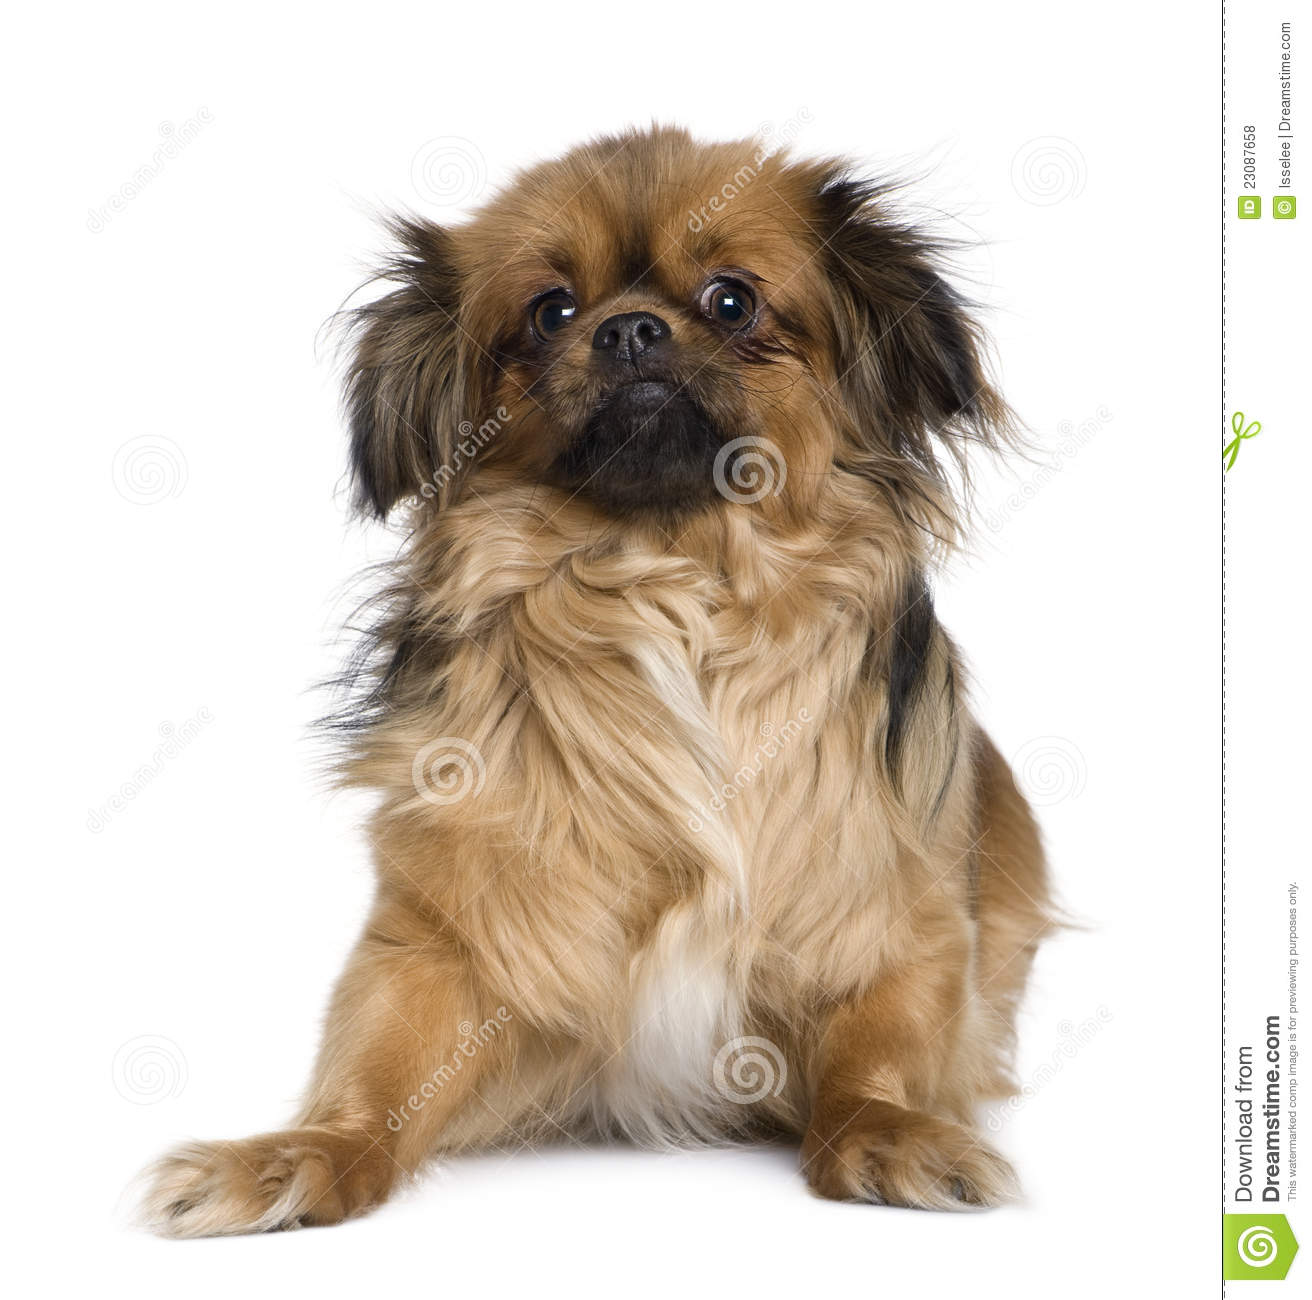 Tibetan spaniel, 4 years old, in front of white